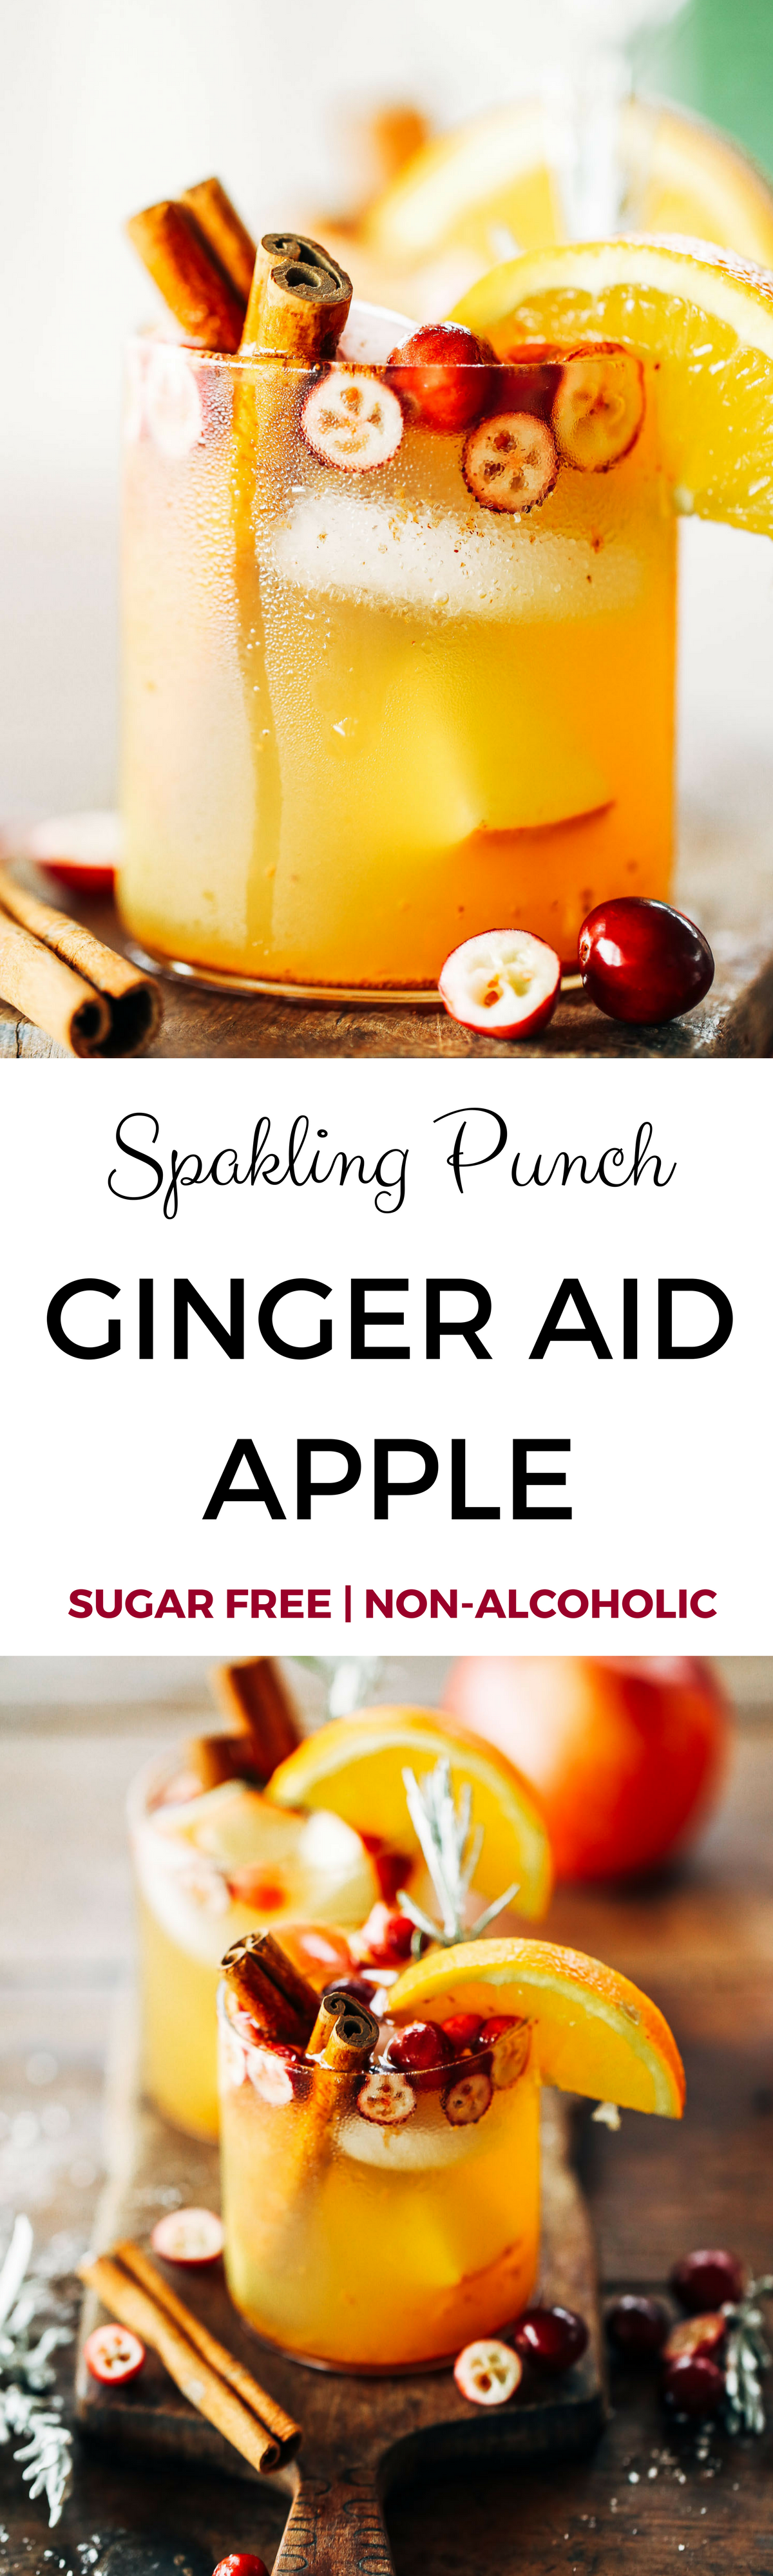 Sugar free holiday drinks. Non alcoholic sugar free punch- the perfect party hit, both kids and adults will love! Sparkling ginger aid apple punch with fresh fruit and sugar free soda! Best non alcoholic drinks. Non alcoholic punch. Apple cider recipes. Non alcoholic sangria. Christmas drinks. Non alcoholic Christmas drinks.